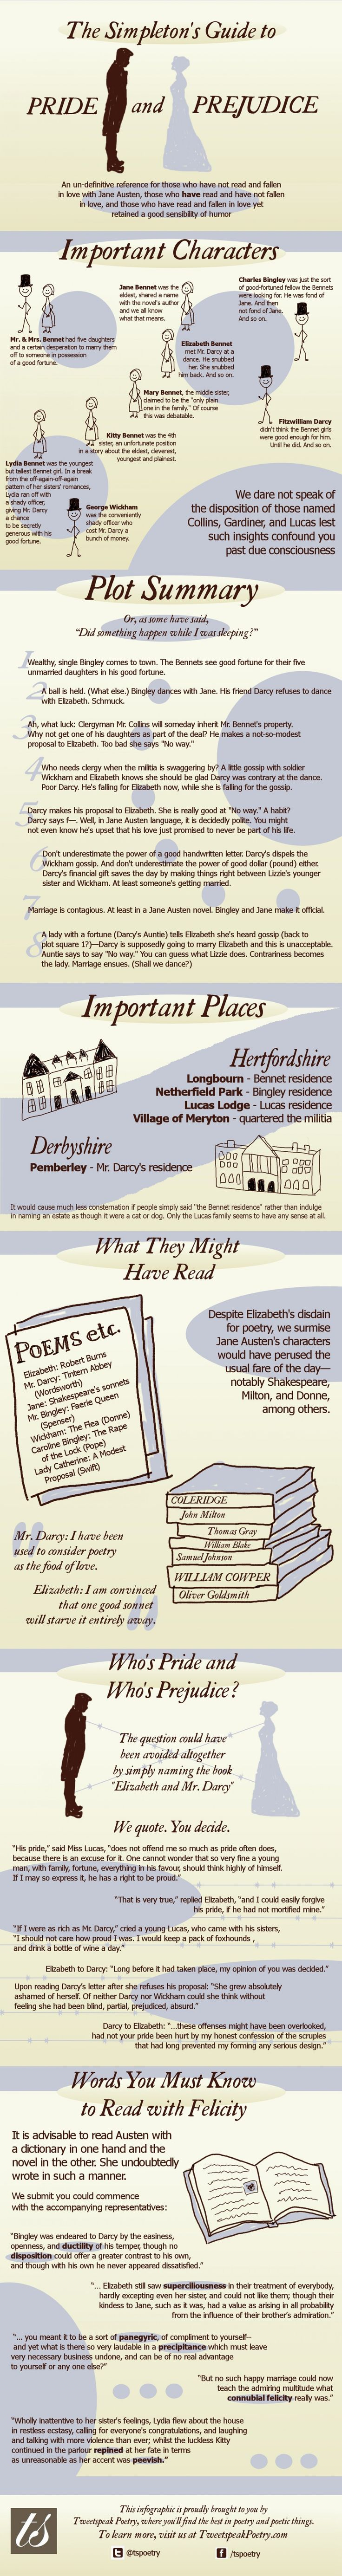 The next issue of The Write Life Mag is the Jane Austen issue! Here's a Guide to Pride and Prejudice [Infographic] to get you in the mood. www.thewritelifestyle.com